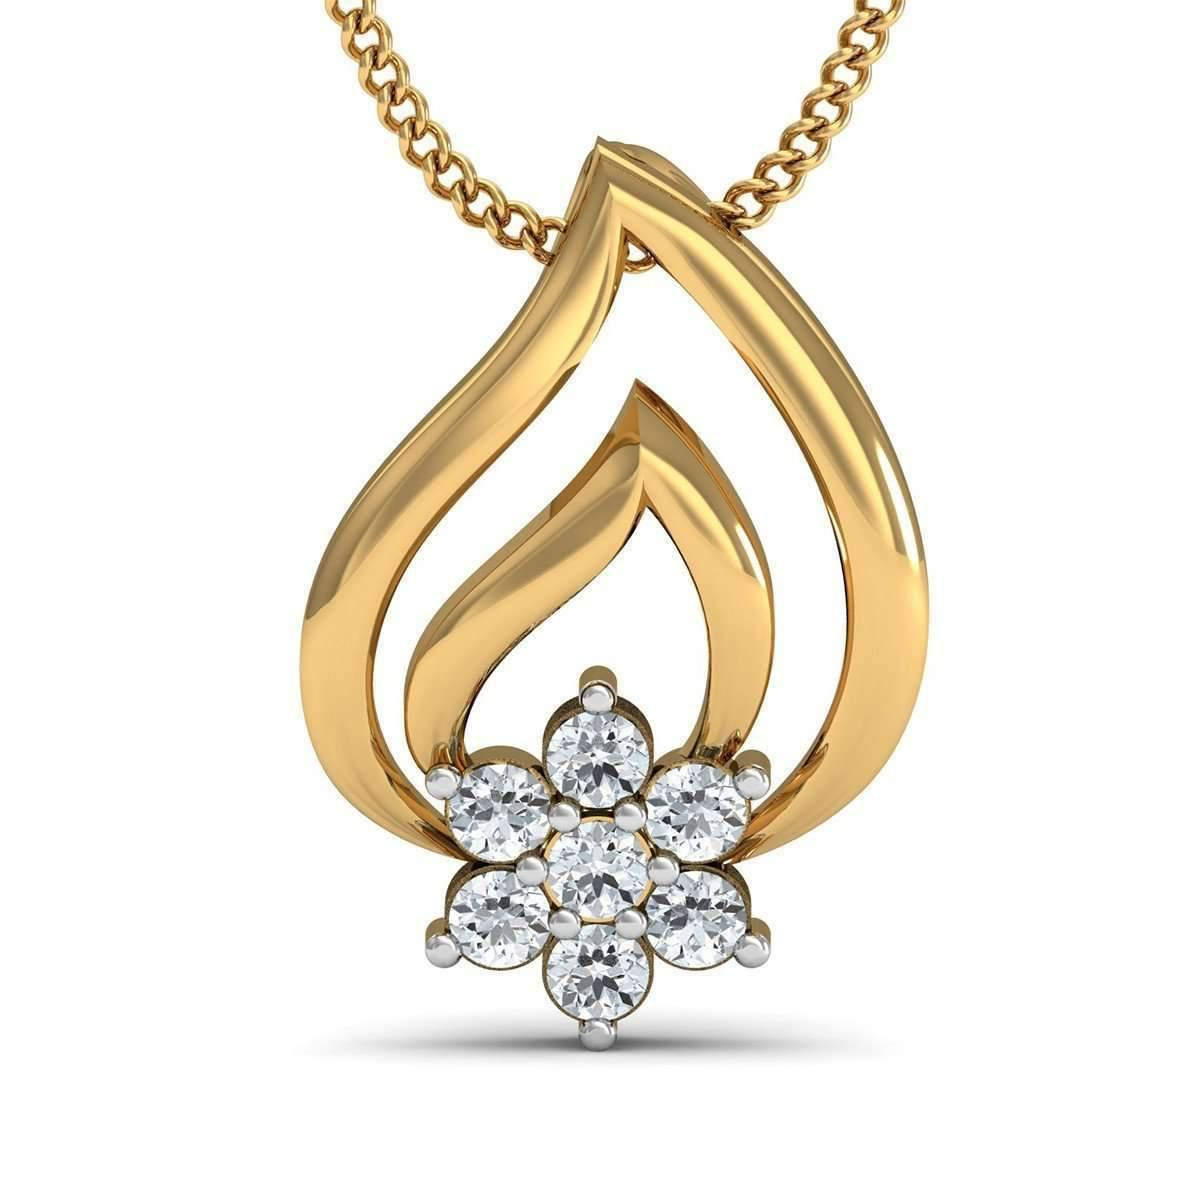 Diamoire Jewels Au-courant Diamond Pave Pendant in 18Kt Yellow Gold HLdWRS